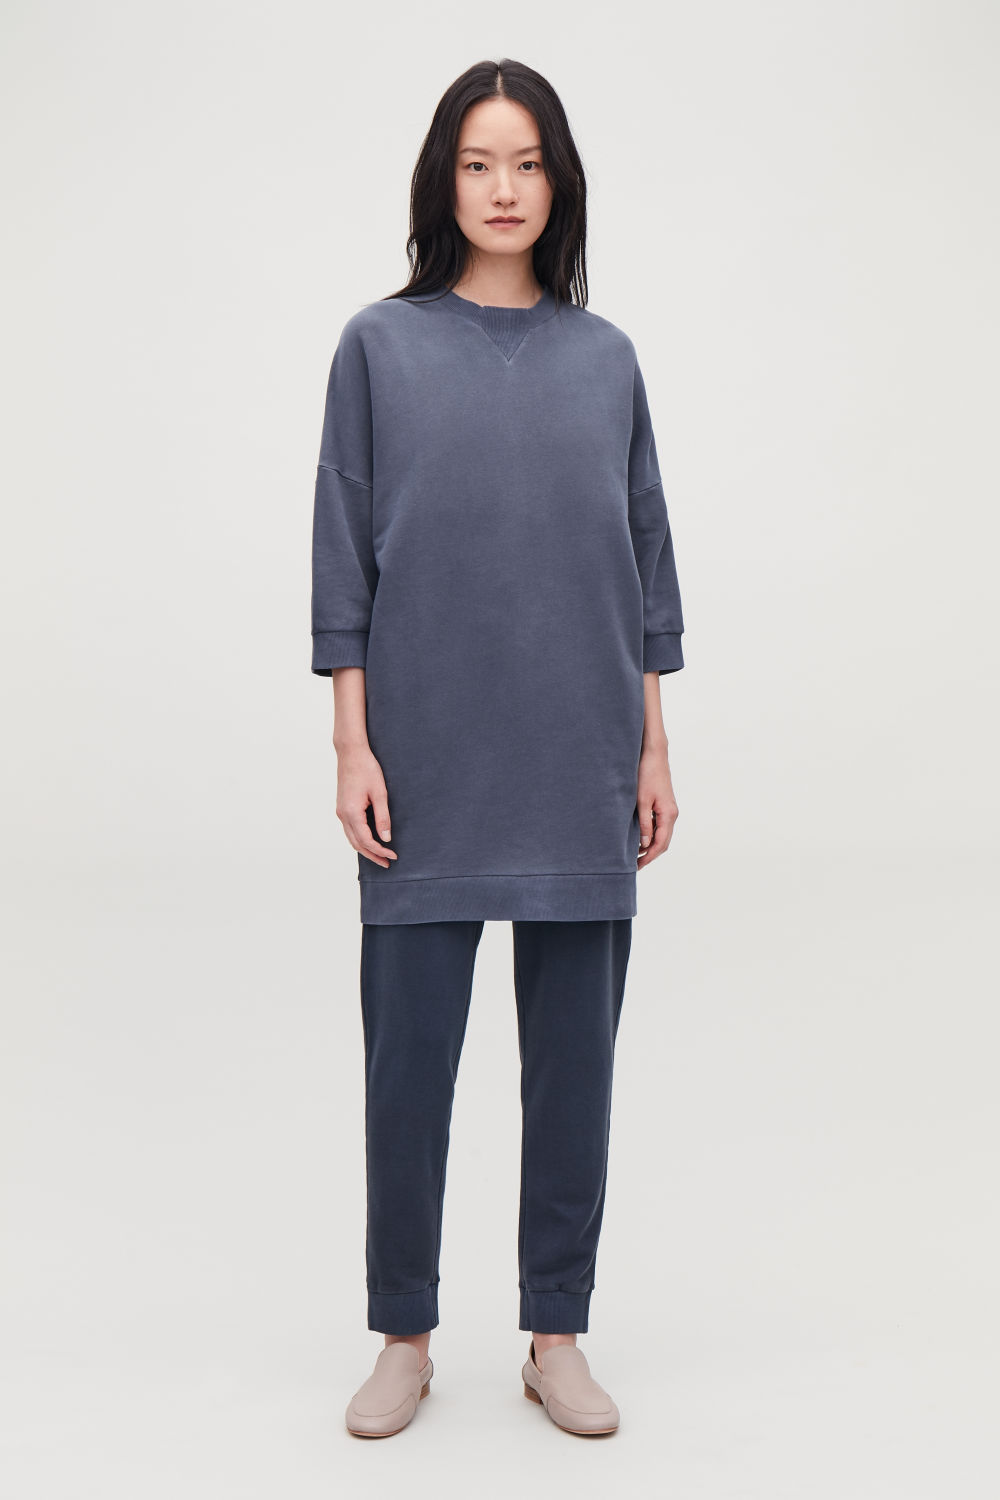 ¾-SLEEVED SWEATSHIRT DRESS